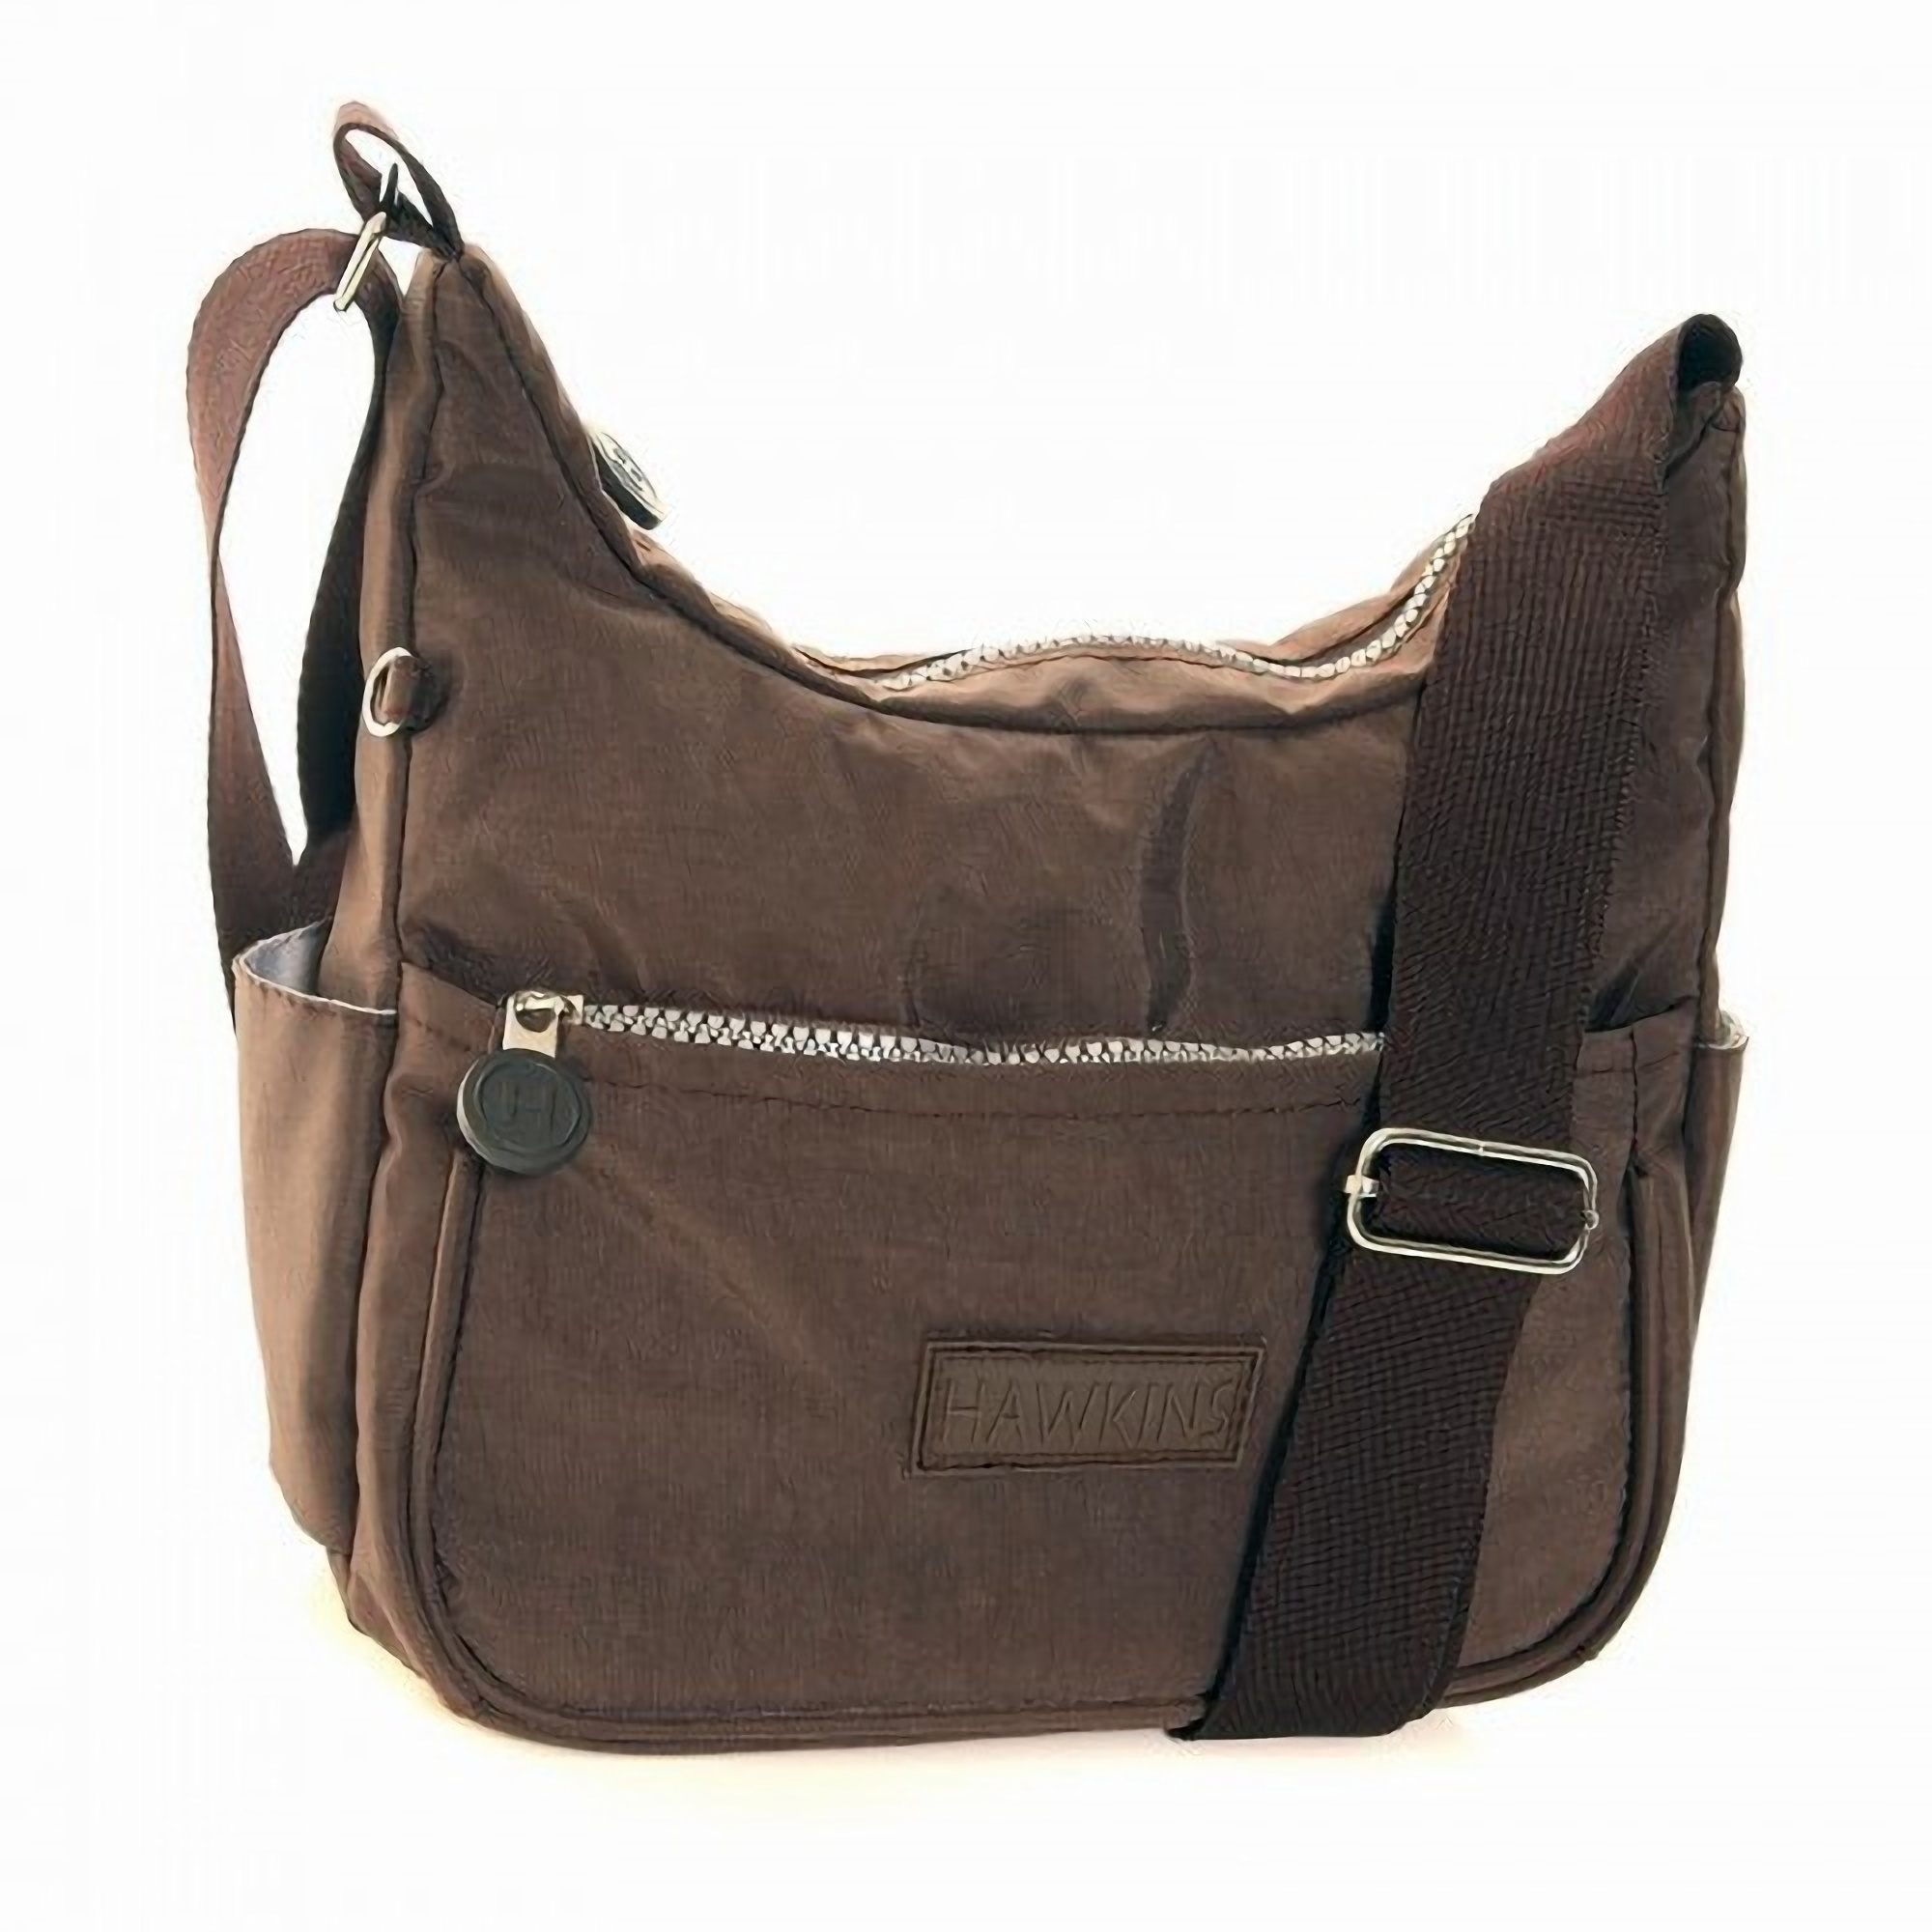 Womens /Ladies Crushed Nylon Casual Cross Body Shoulder ...